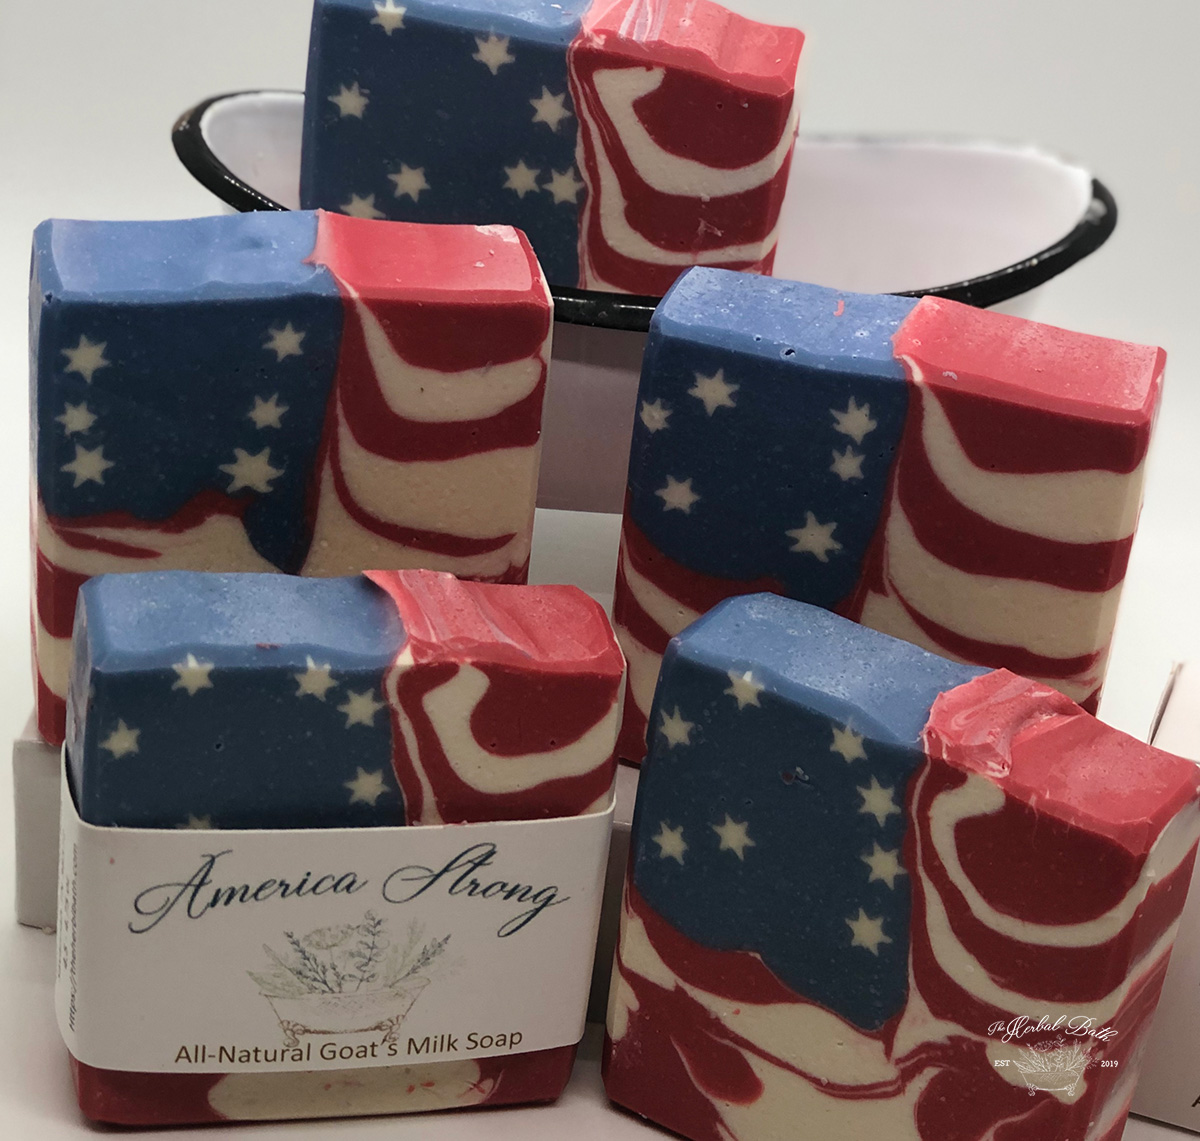 America Strong goats milk soap